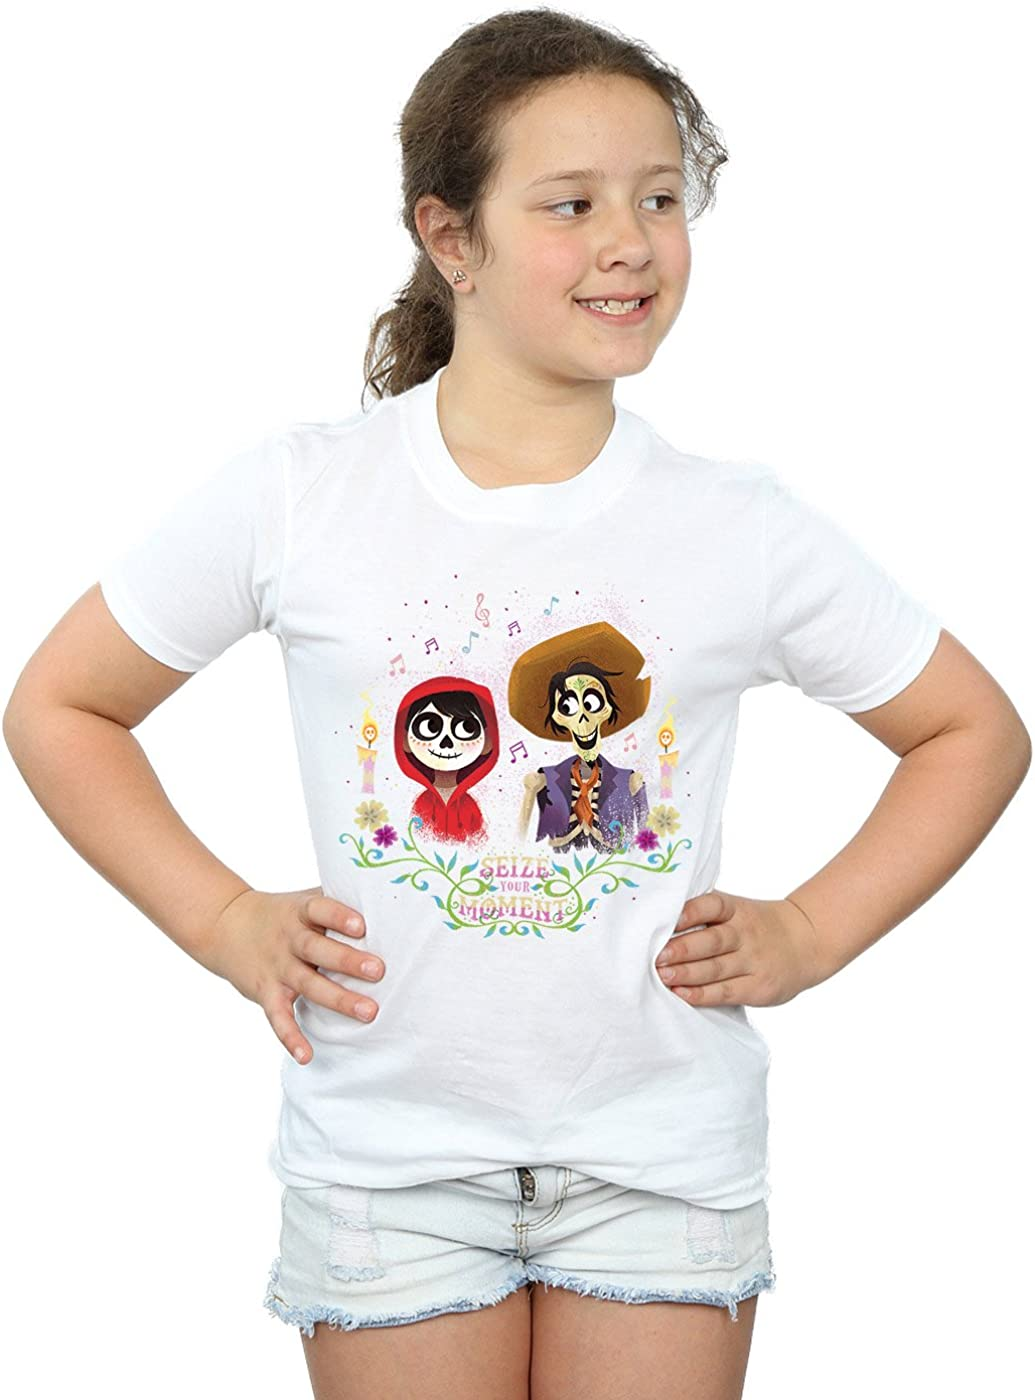 Disney Girls Coco Miguel and Hector T-Shirt 5-6 Years White